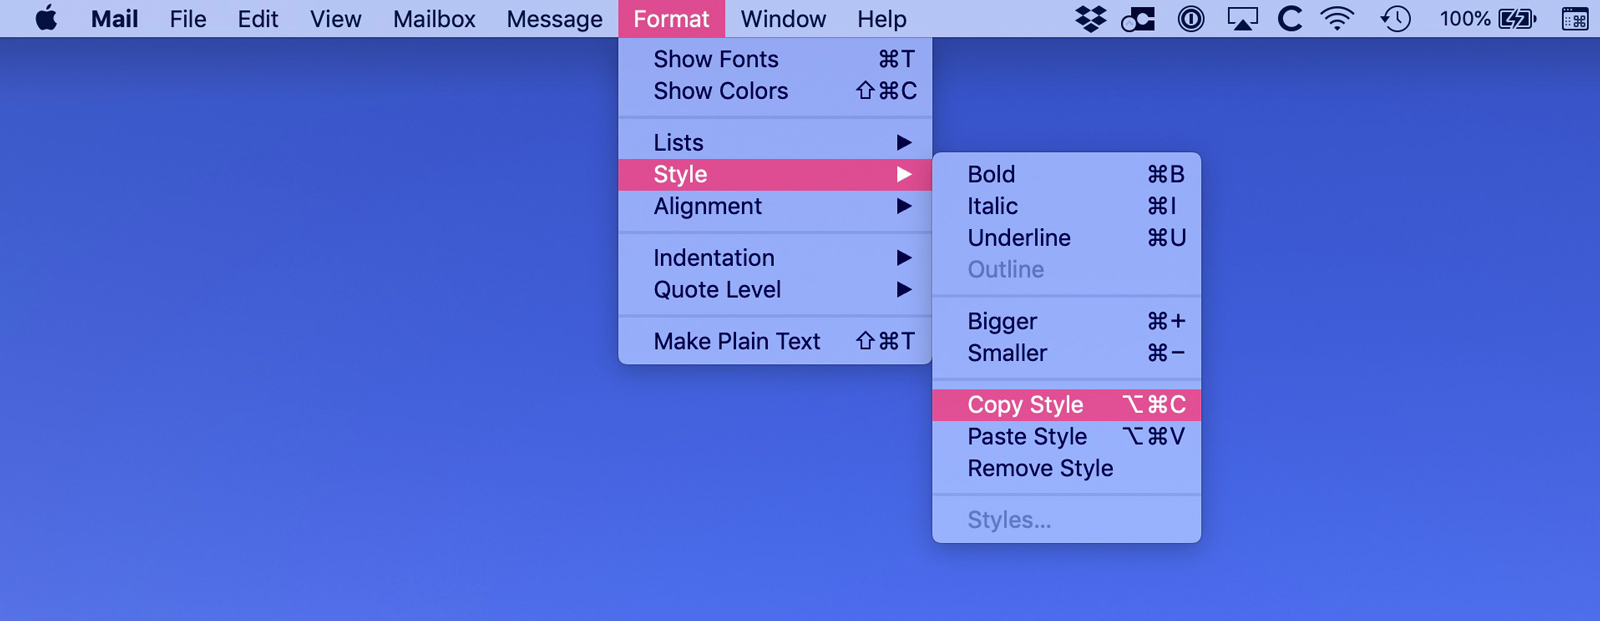 Change fonts and styles